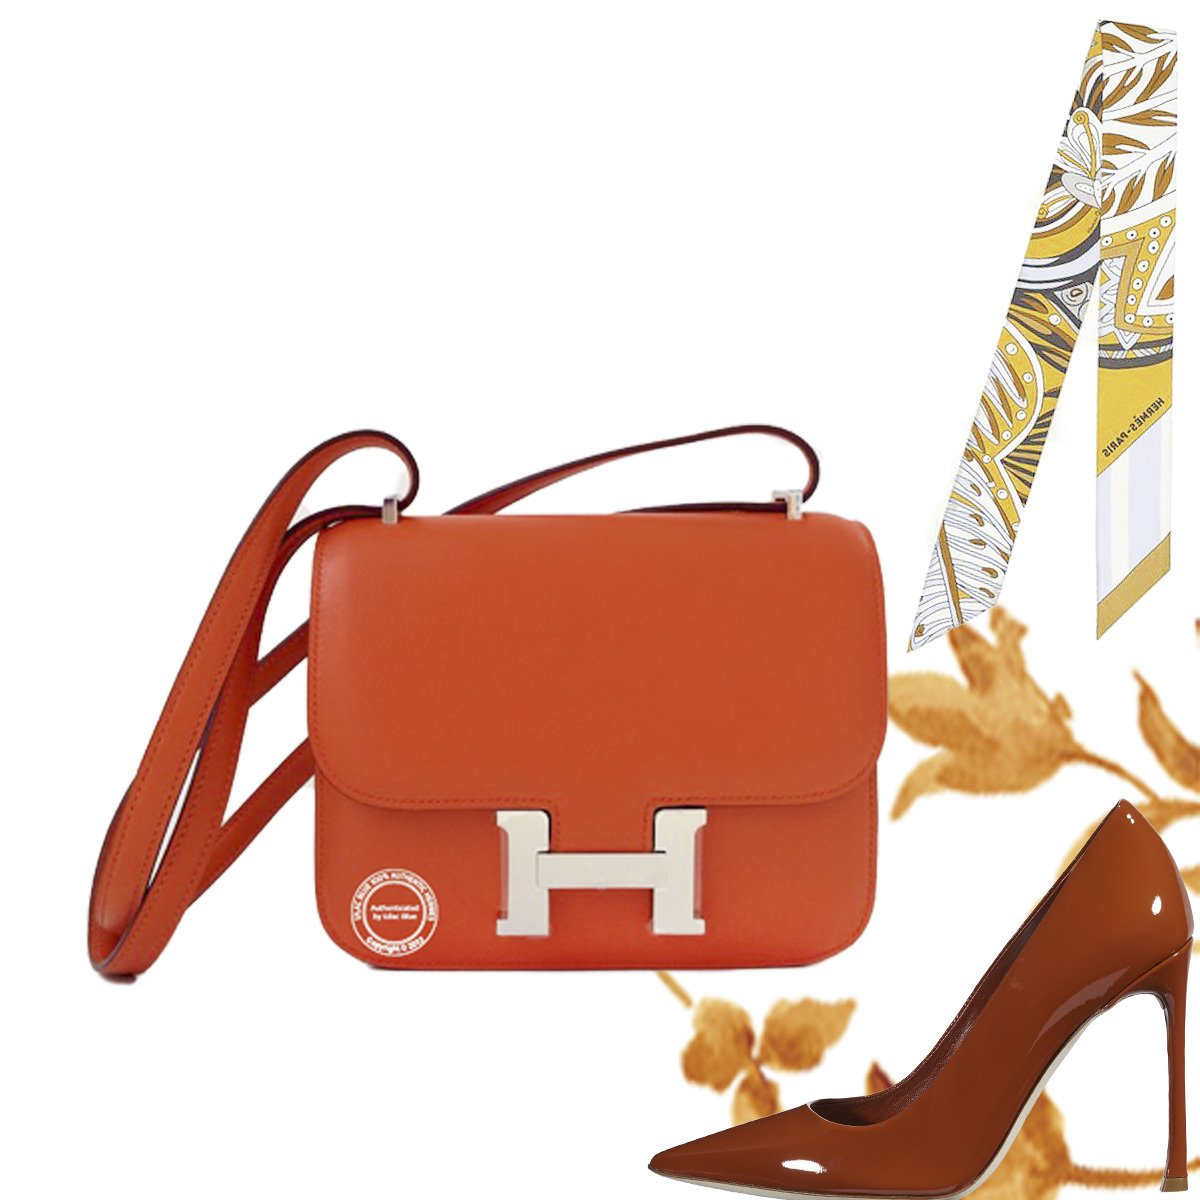 test Twitter Media - #Hermes Constance 18cm Orange Epsom PHW https://t.co/5t8Ds1NLLC  #HermesHandBags #HermesLondon #LilacBlueLondon  For more information please call on +44 845 224 8876 or email info@lilacblue.com https://t.co/dmBa0PU7Yn